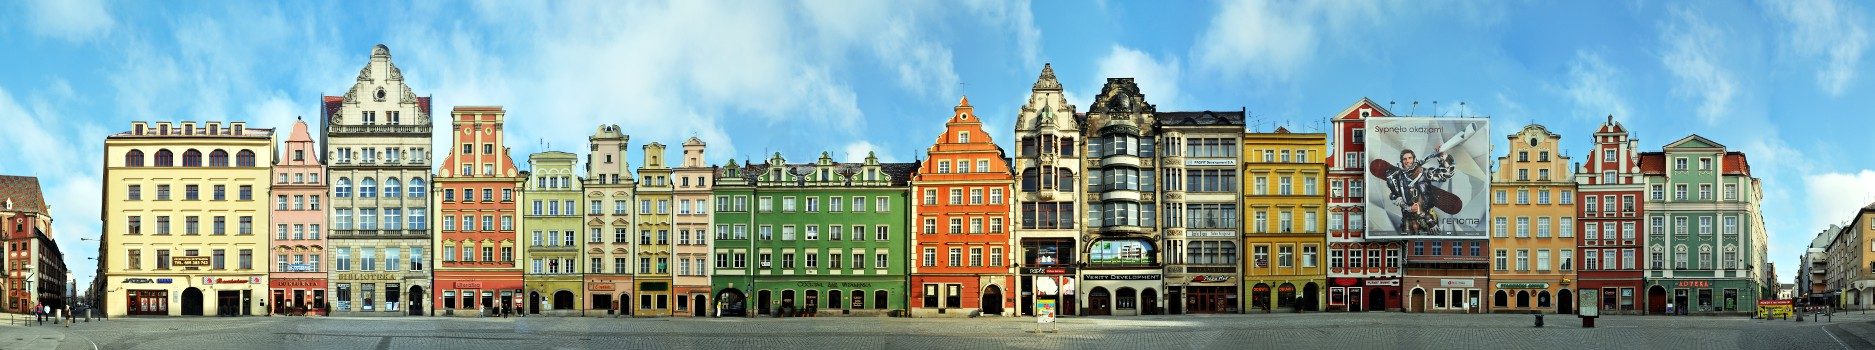 Wroclaw Poland  city pictures gallery : Rynek northside • Wroclaw • Poland